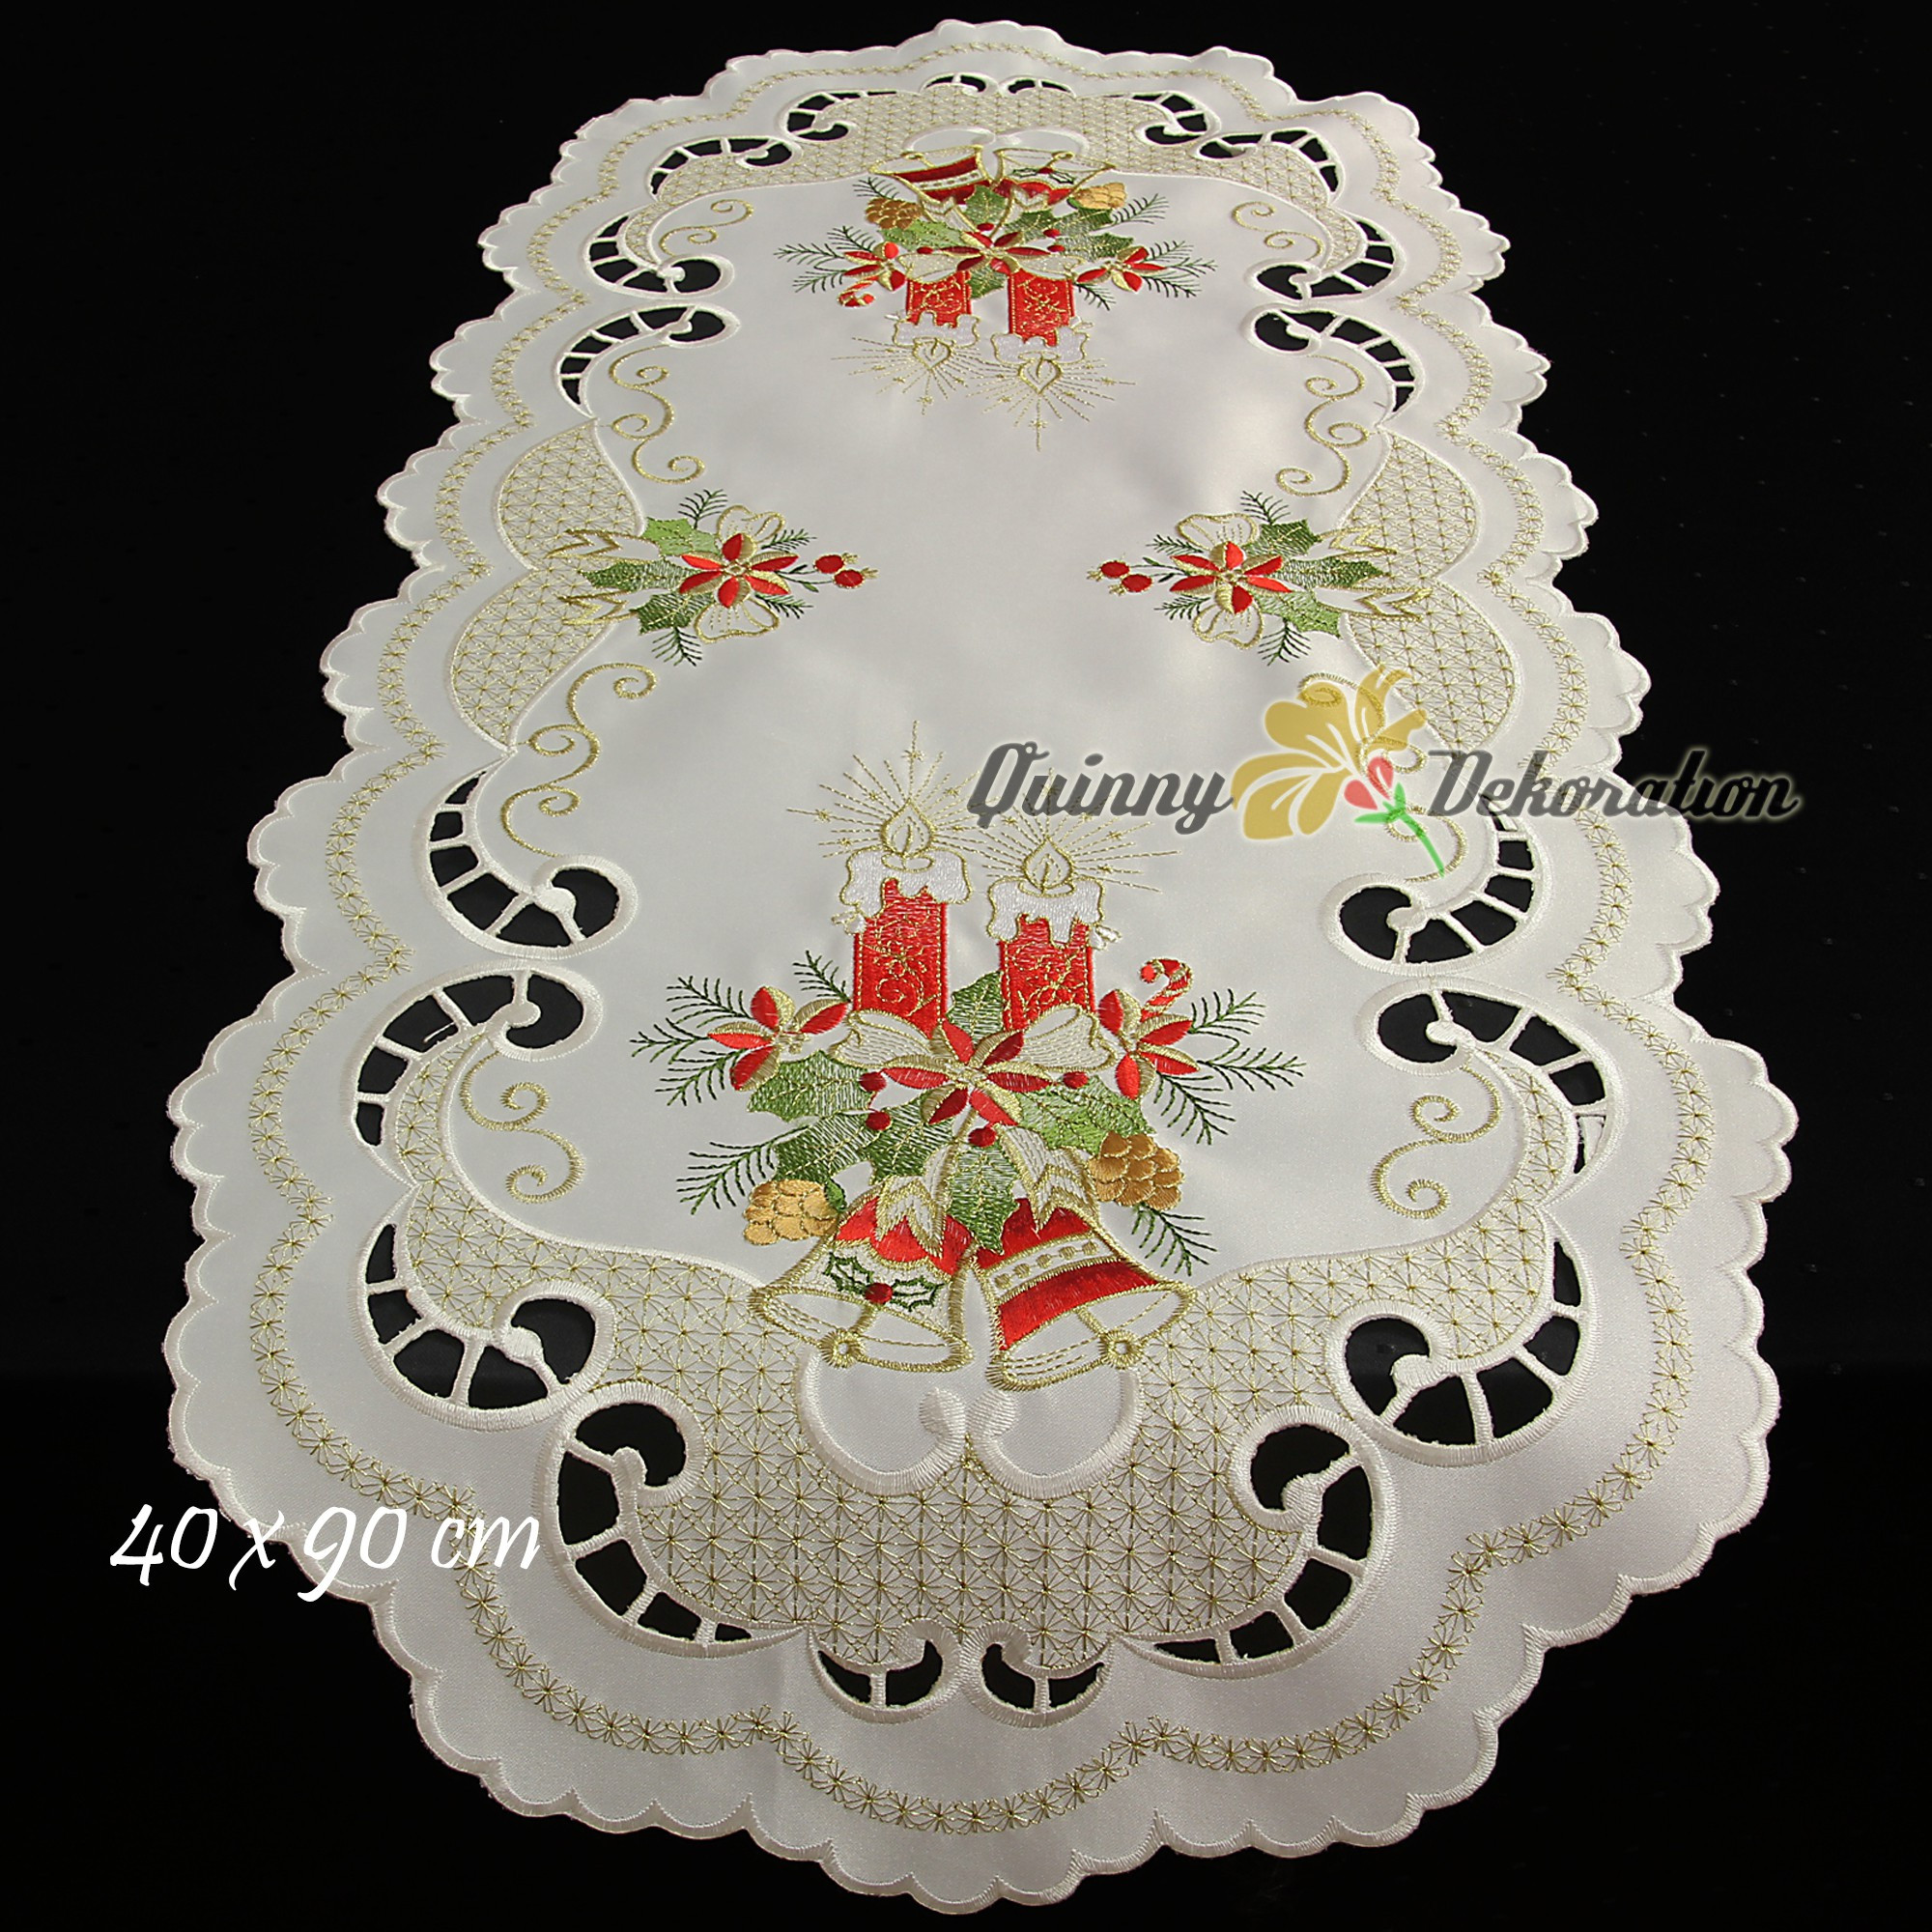 Christmas Tablecloth Table runner Doily Cushion cover